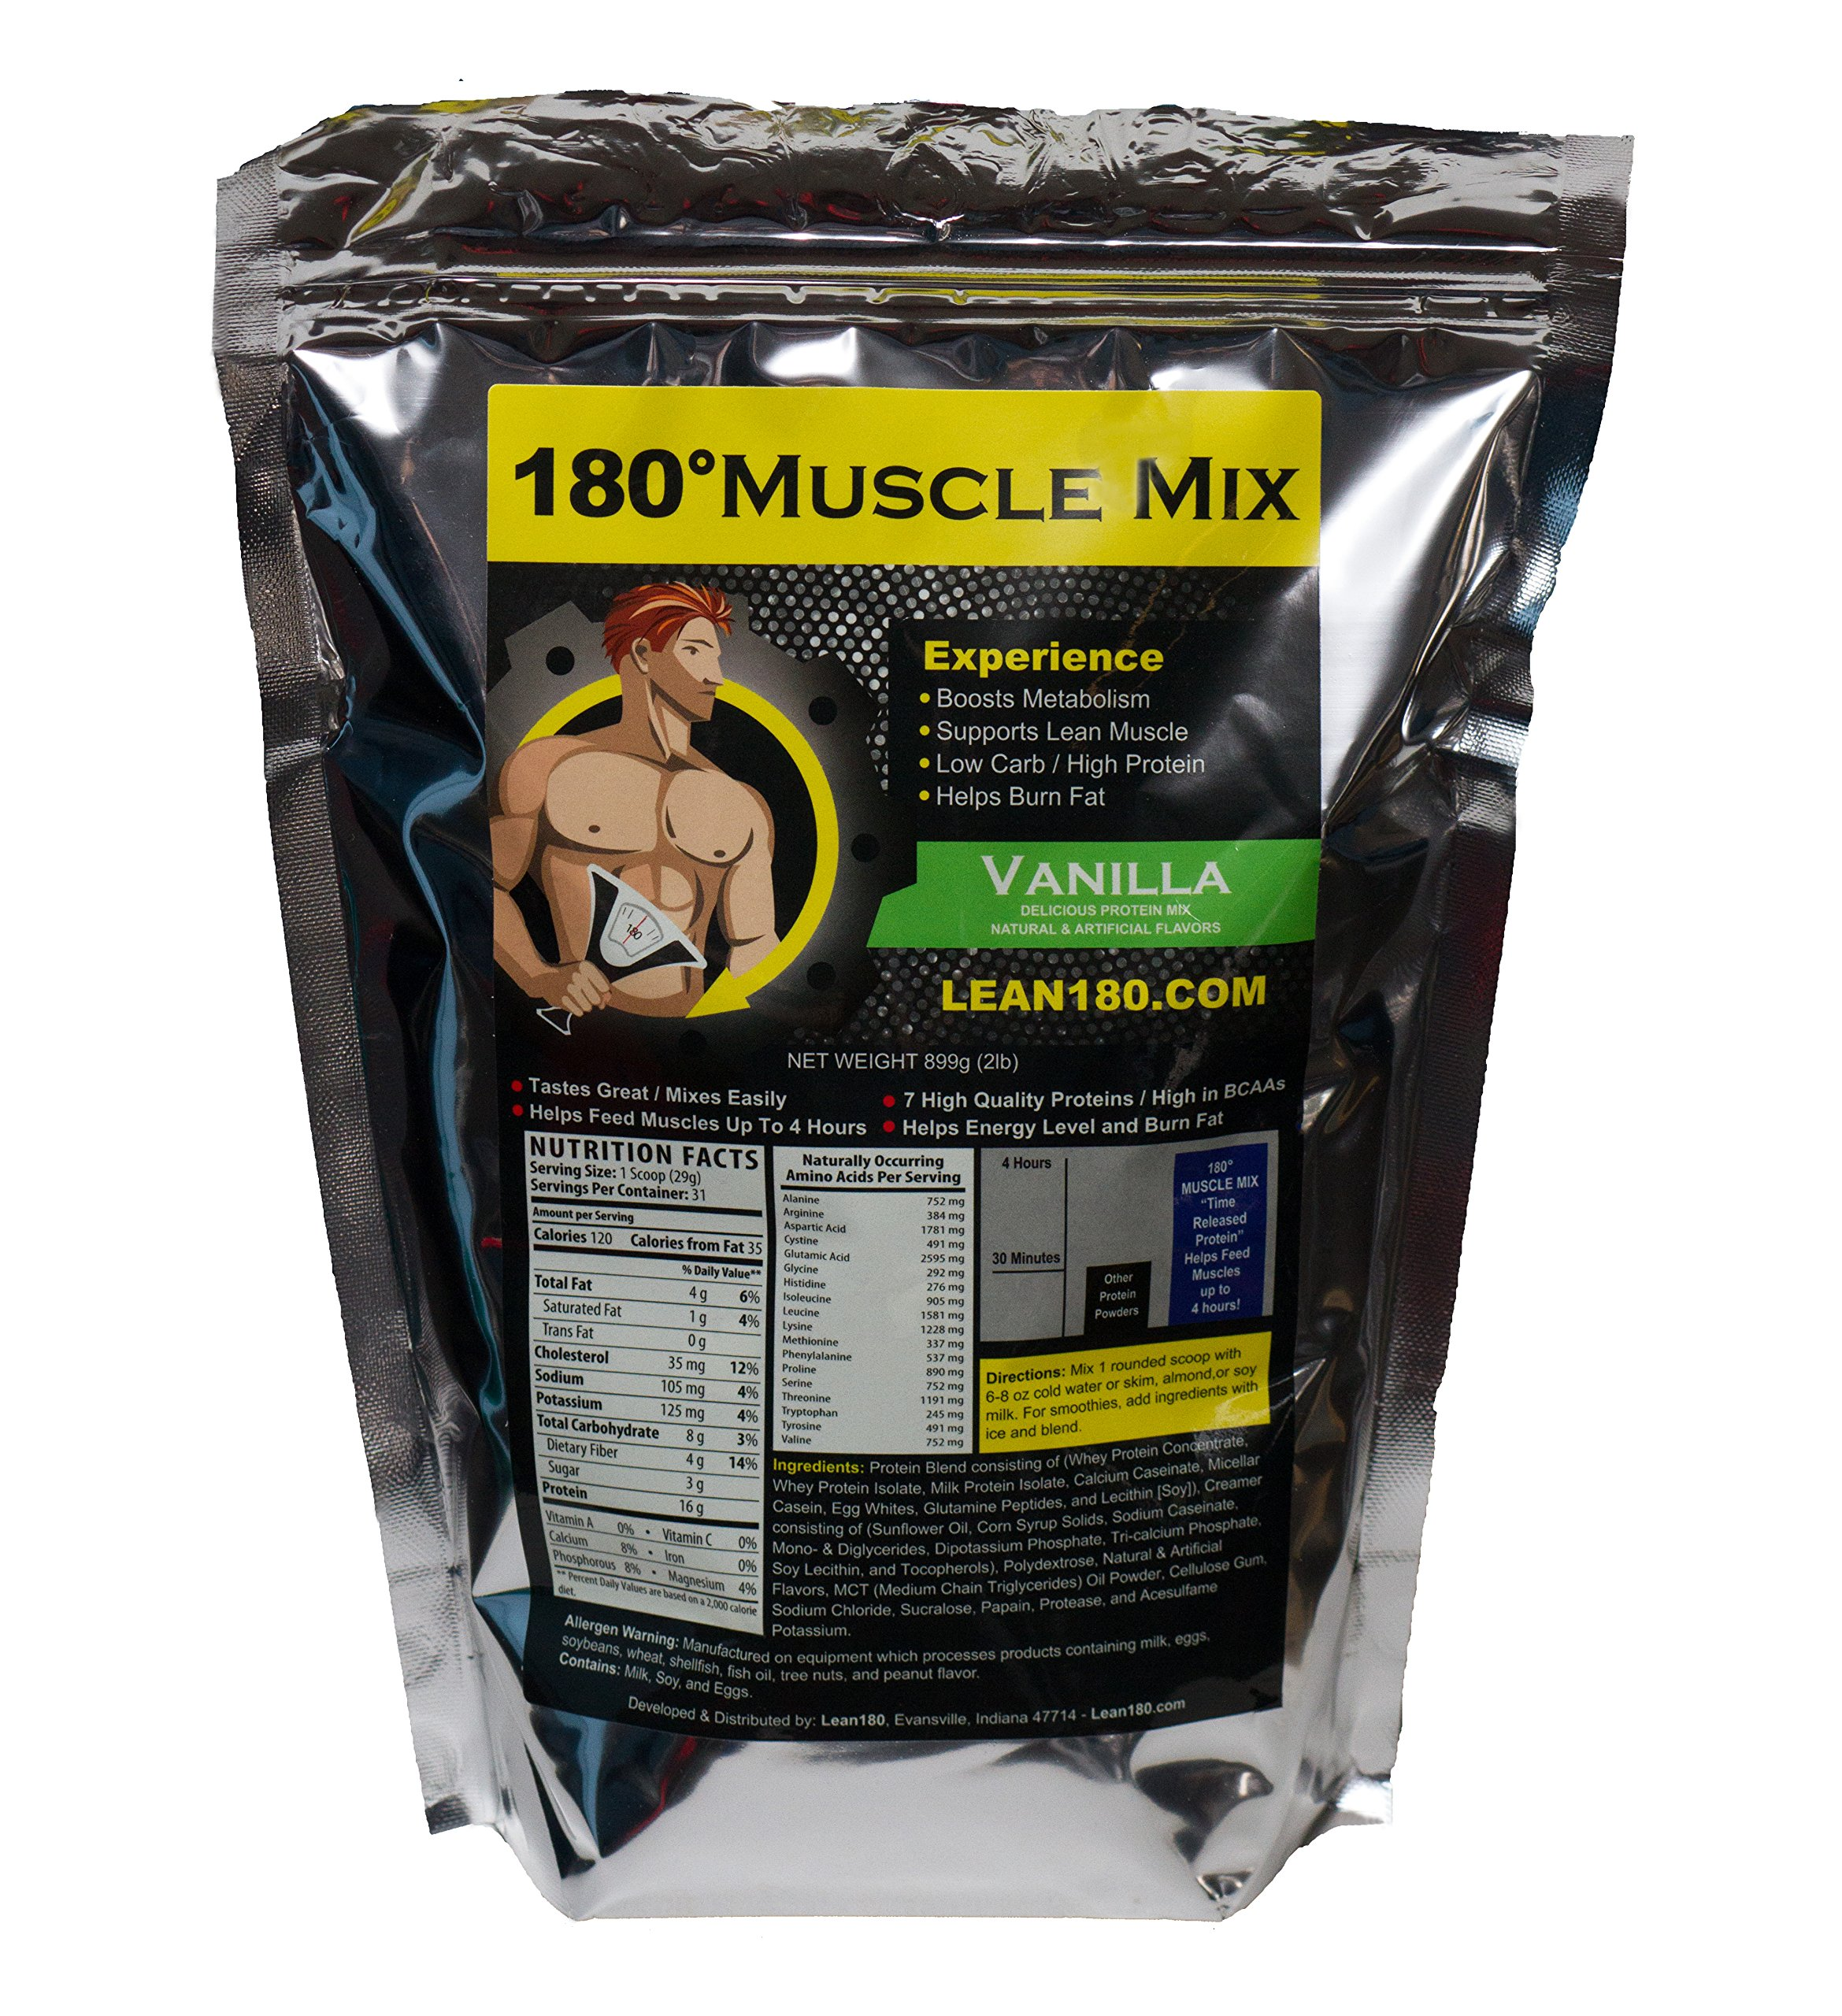 Lean 180 Muscle Mix, Best Weight Loss Protein Shake for Men, Burns Fat, Helps Build Muscle, Boosts Energy, Tastes Great, 31 Shakes per Bag (Vanilla)